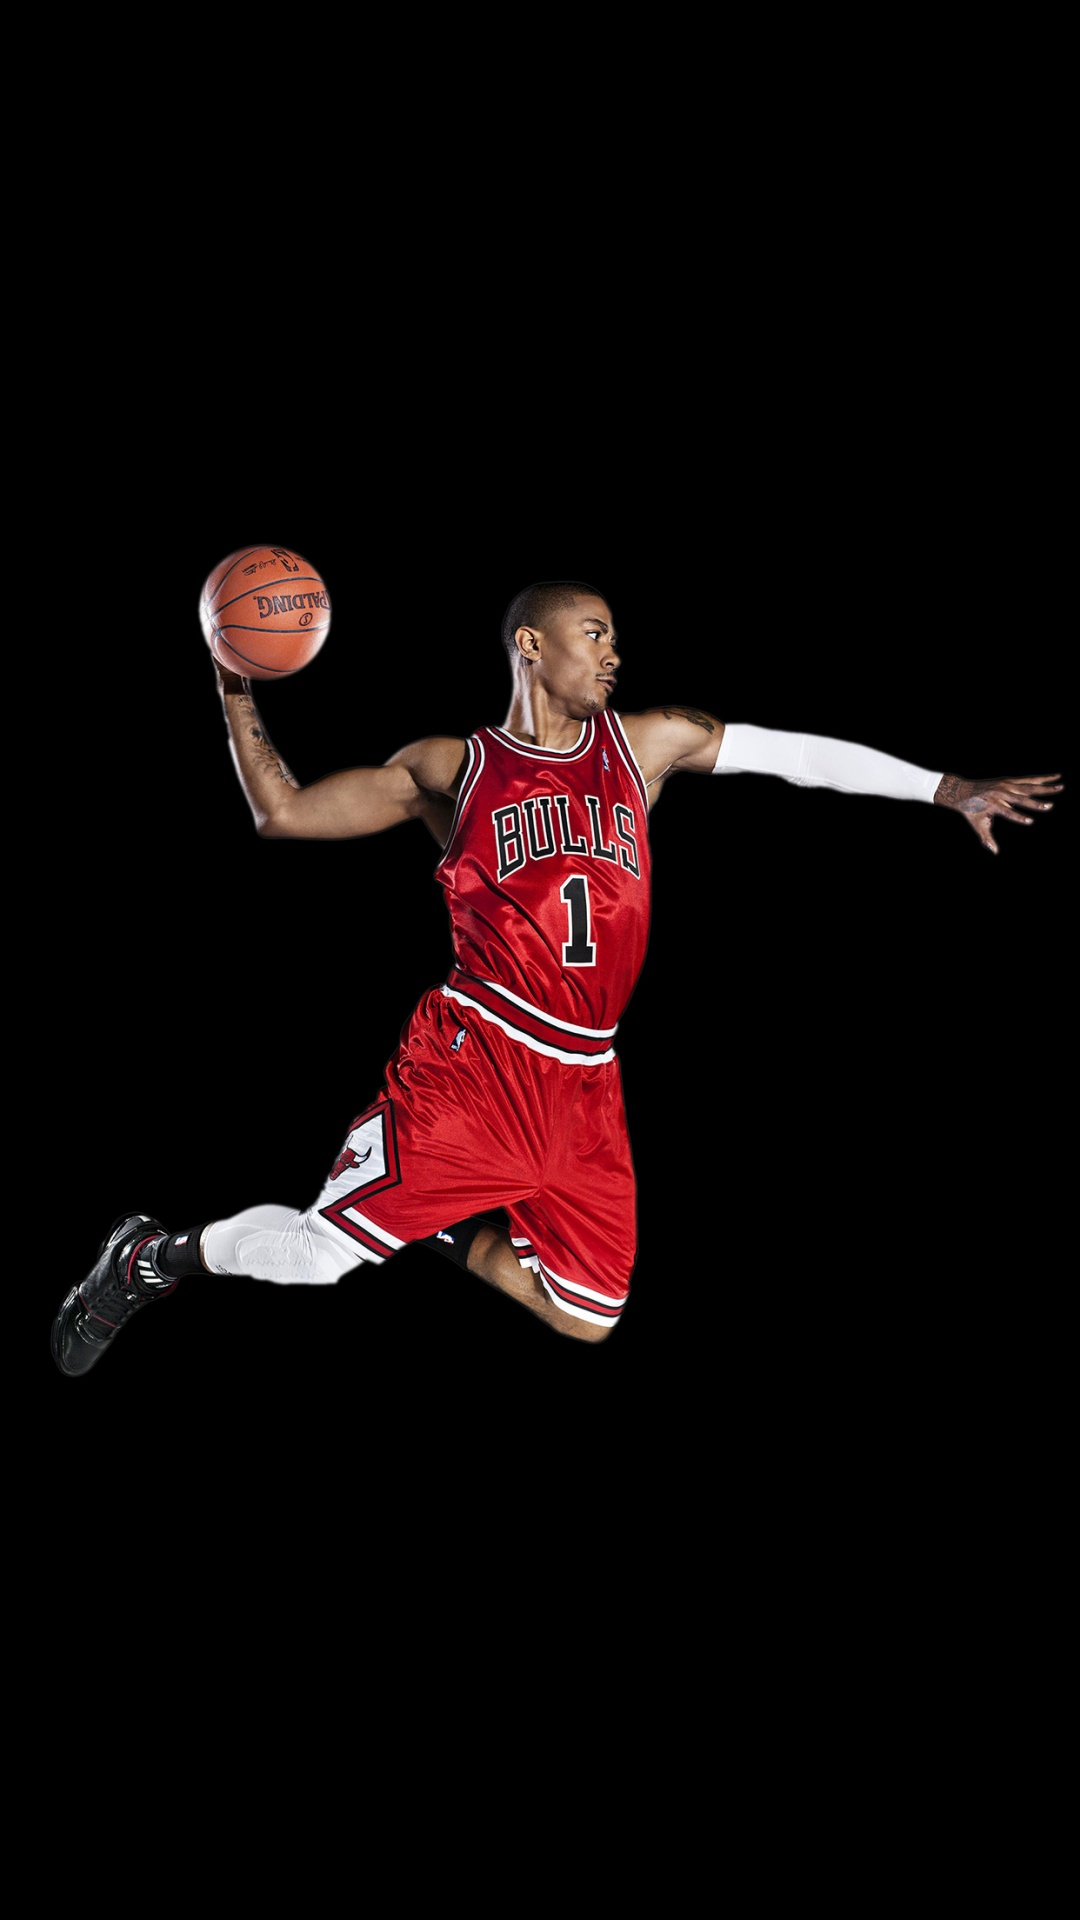 Chicago Bulls Derrick Rose iPhone 6 HD Wallpaper iPod 1080x1920